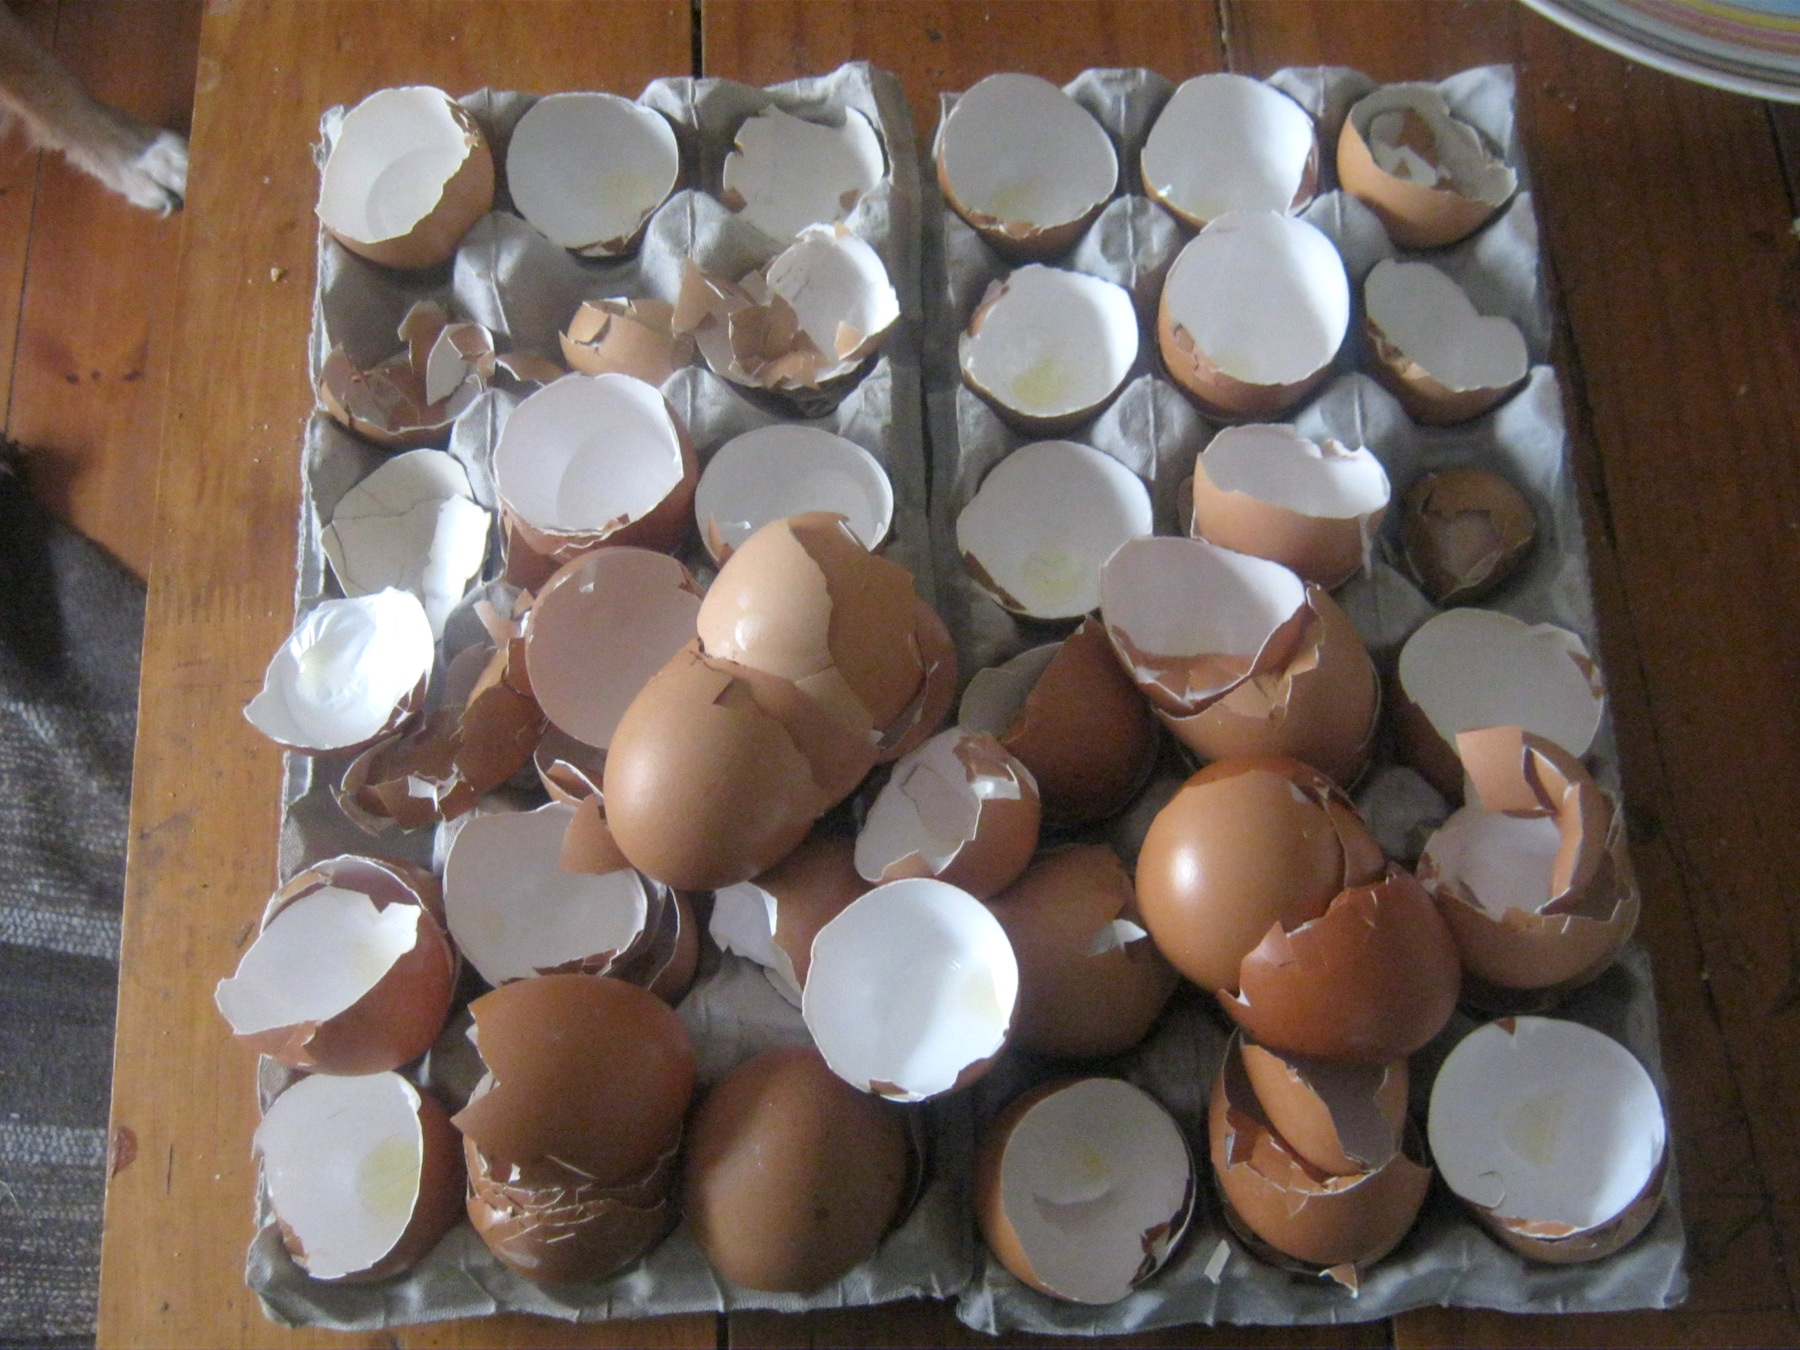 Cracked egg shells on egg cartons to be processed to worm food